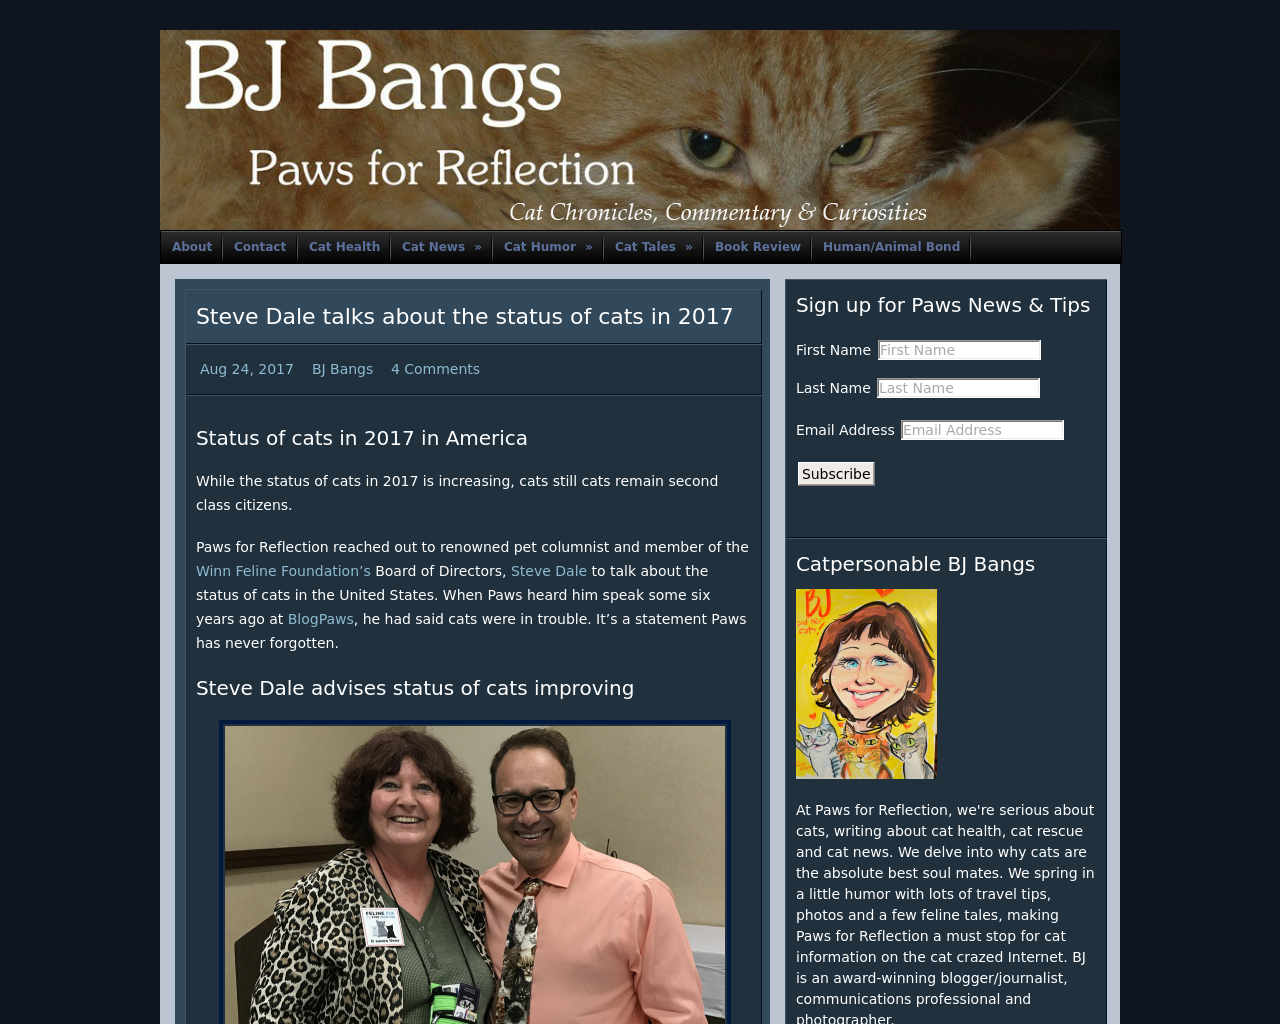 BJ-Bangs-Paws-for-Reflection-Advertising-Reviews-Pricing